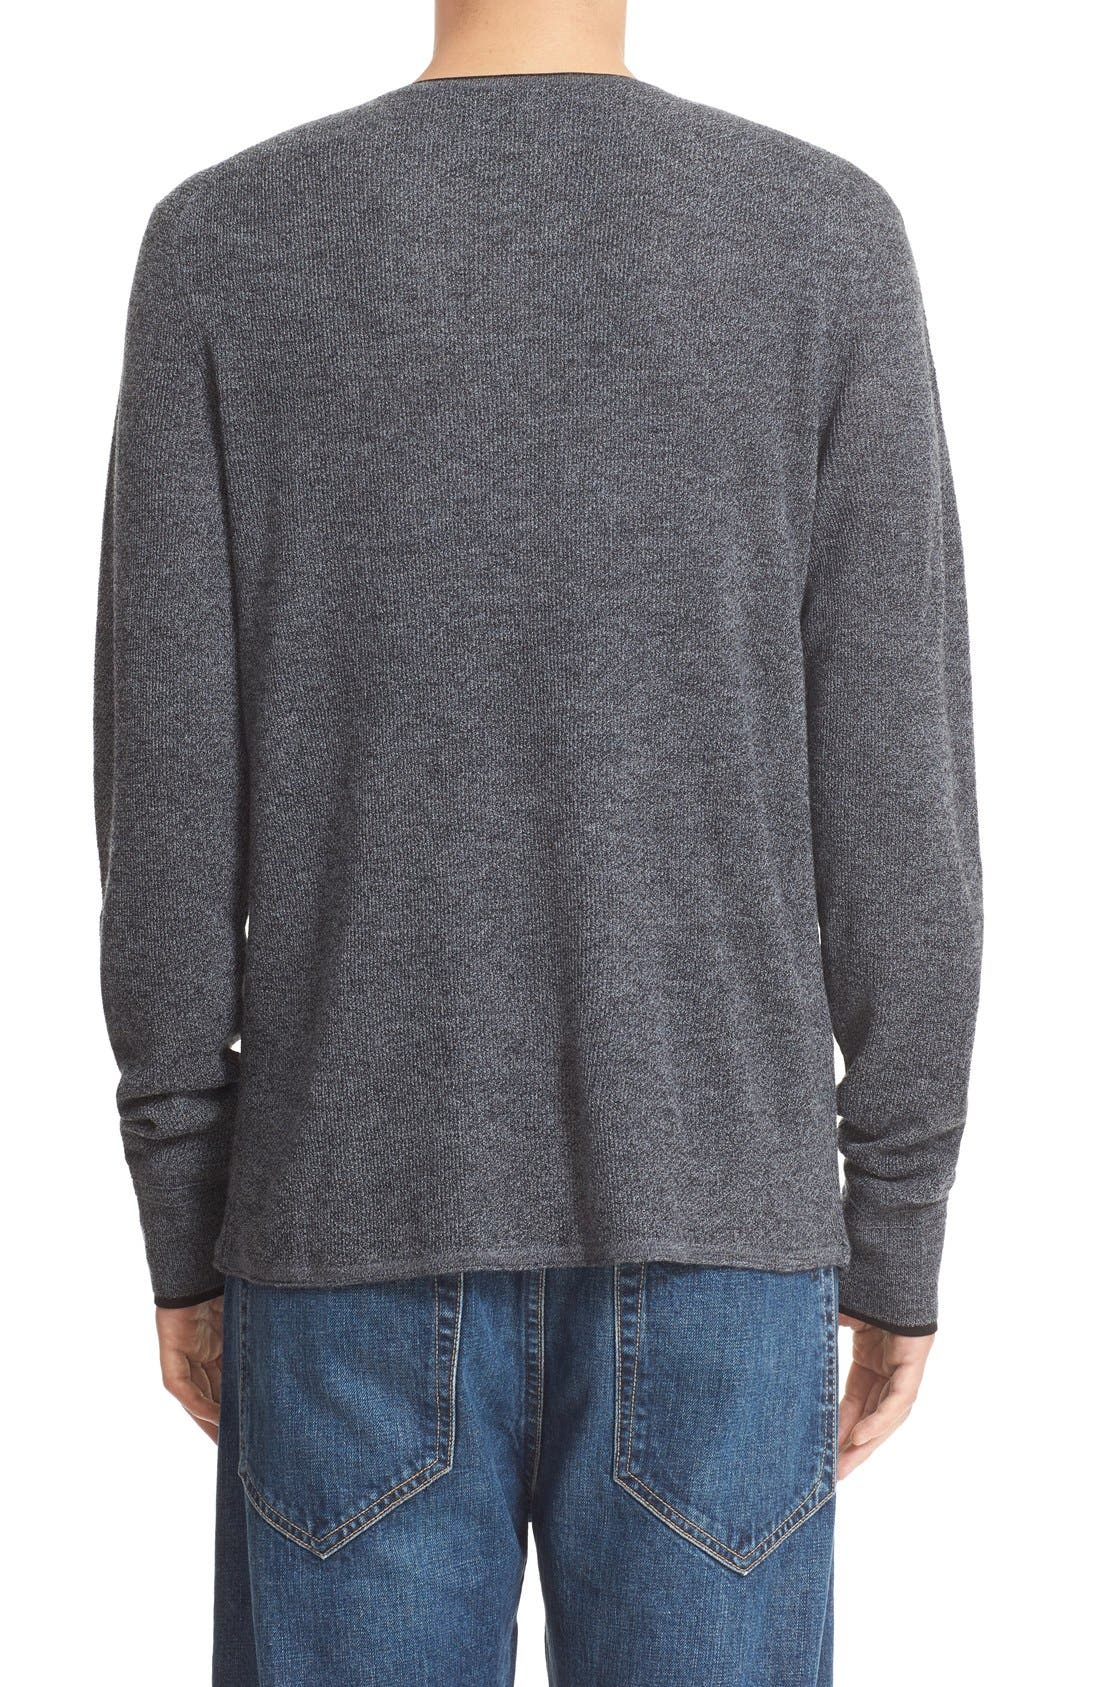 'Giles' Lightweight Merino Wool Pullover,                             Alternate thumbnail 2, color,                             Charcoal